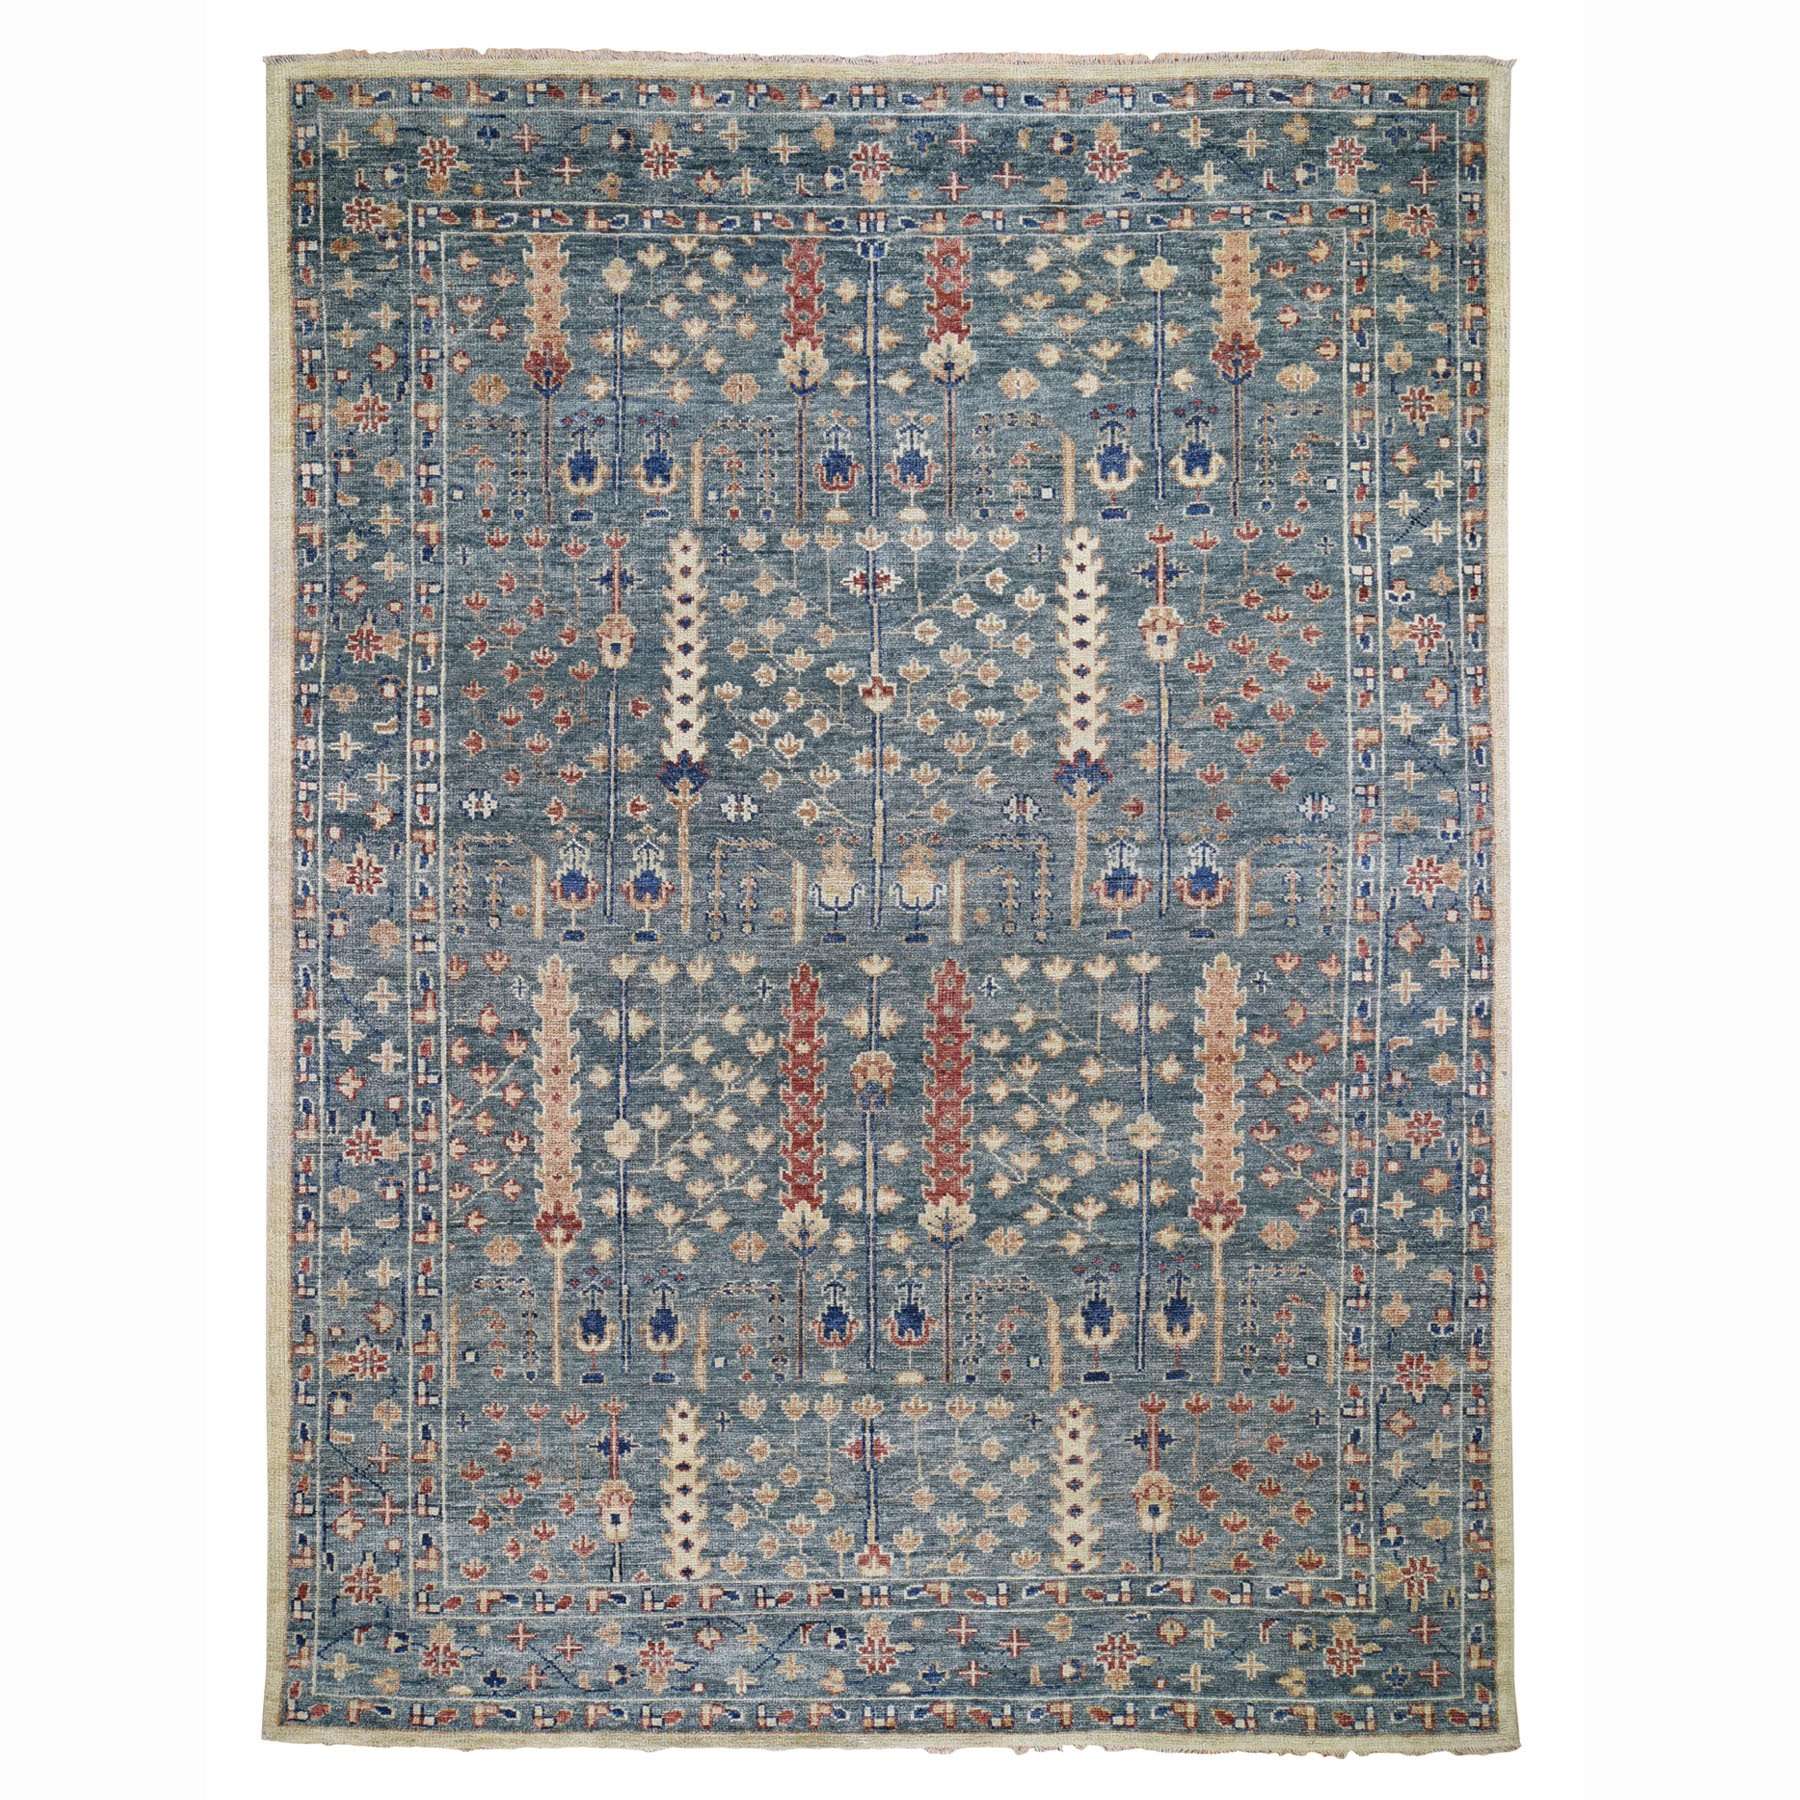 """9'10""""X14' Teal Green Supple Collection With Tree Design Soft Wool Hand Knotted Oriental Rug moad786e"""